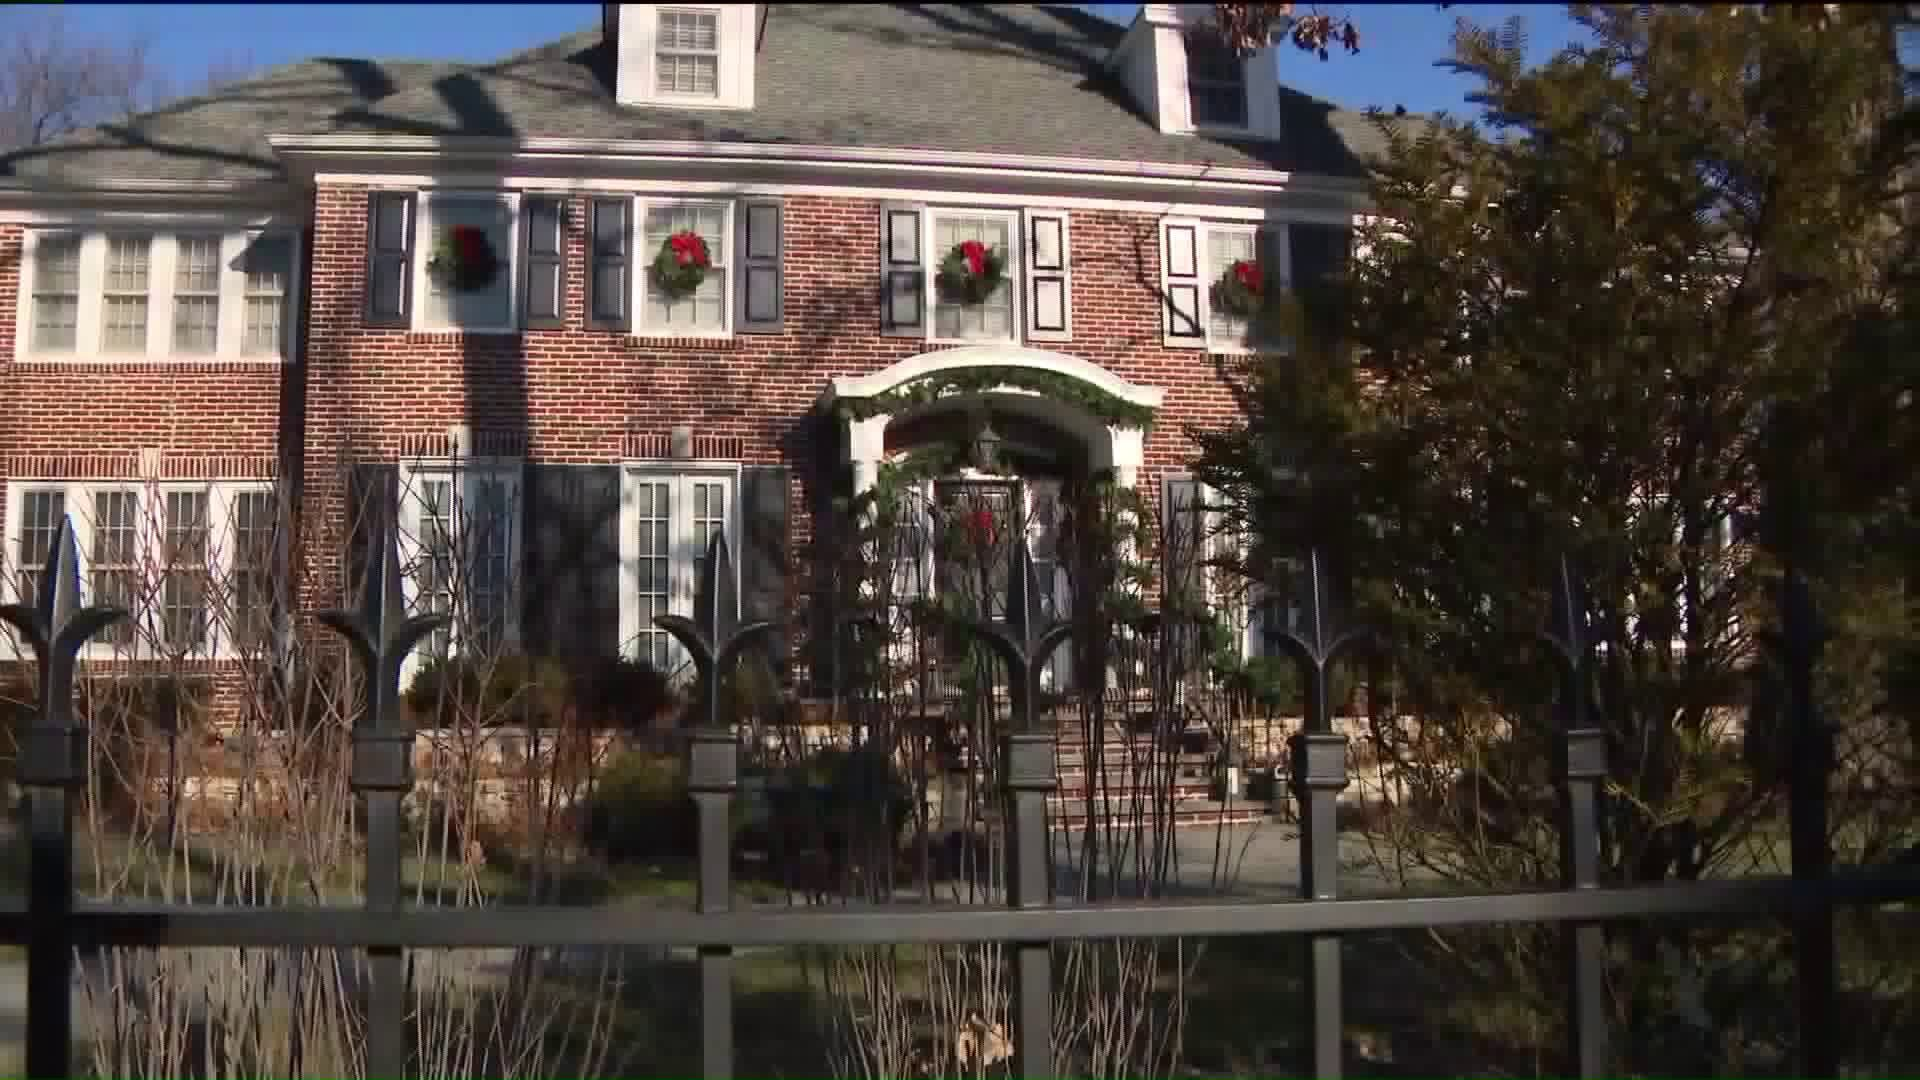 Neighbors of 'Home Alone' house share behind-the-scenes ...